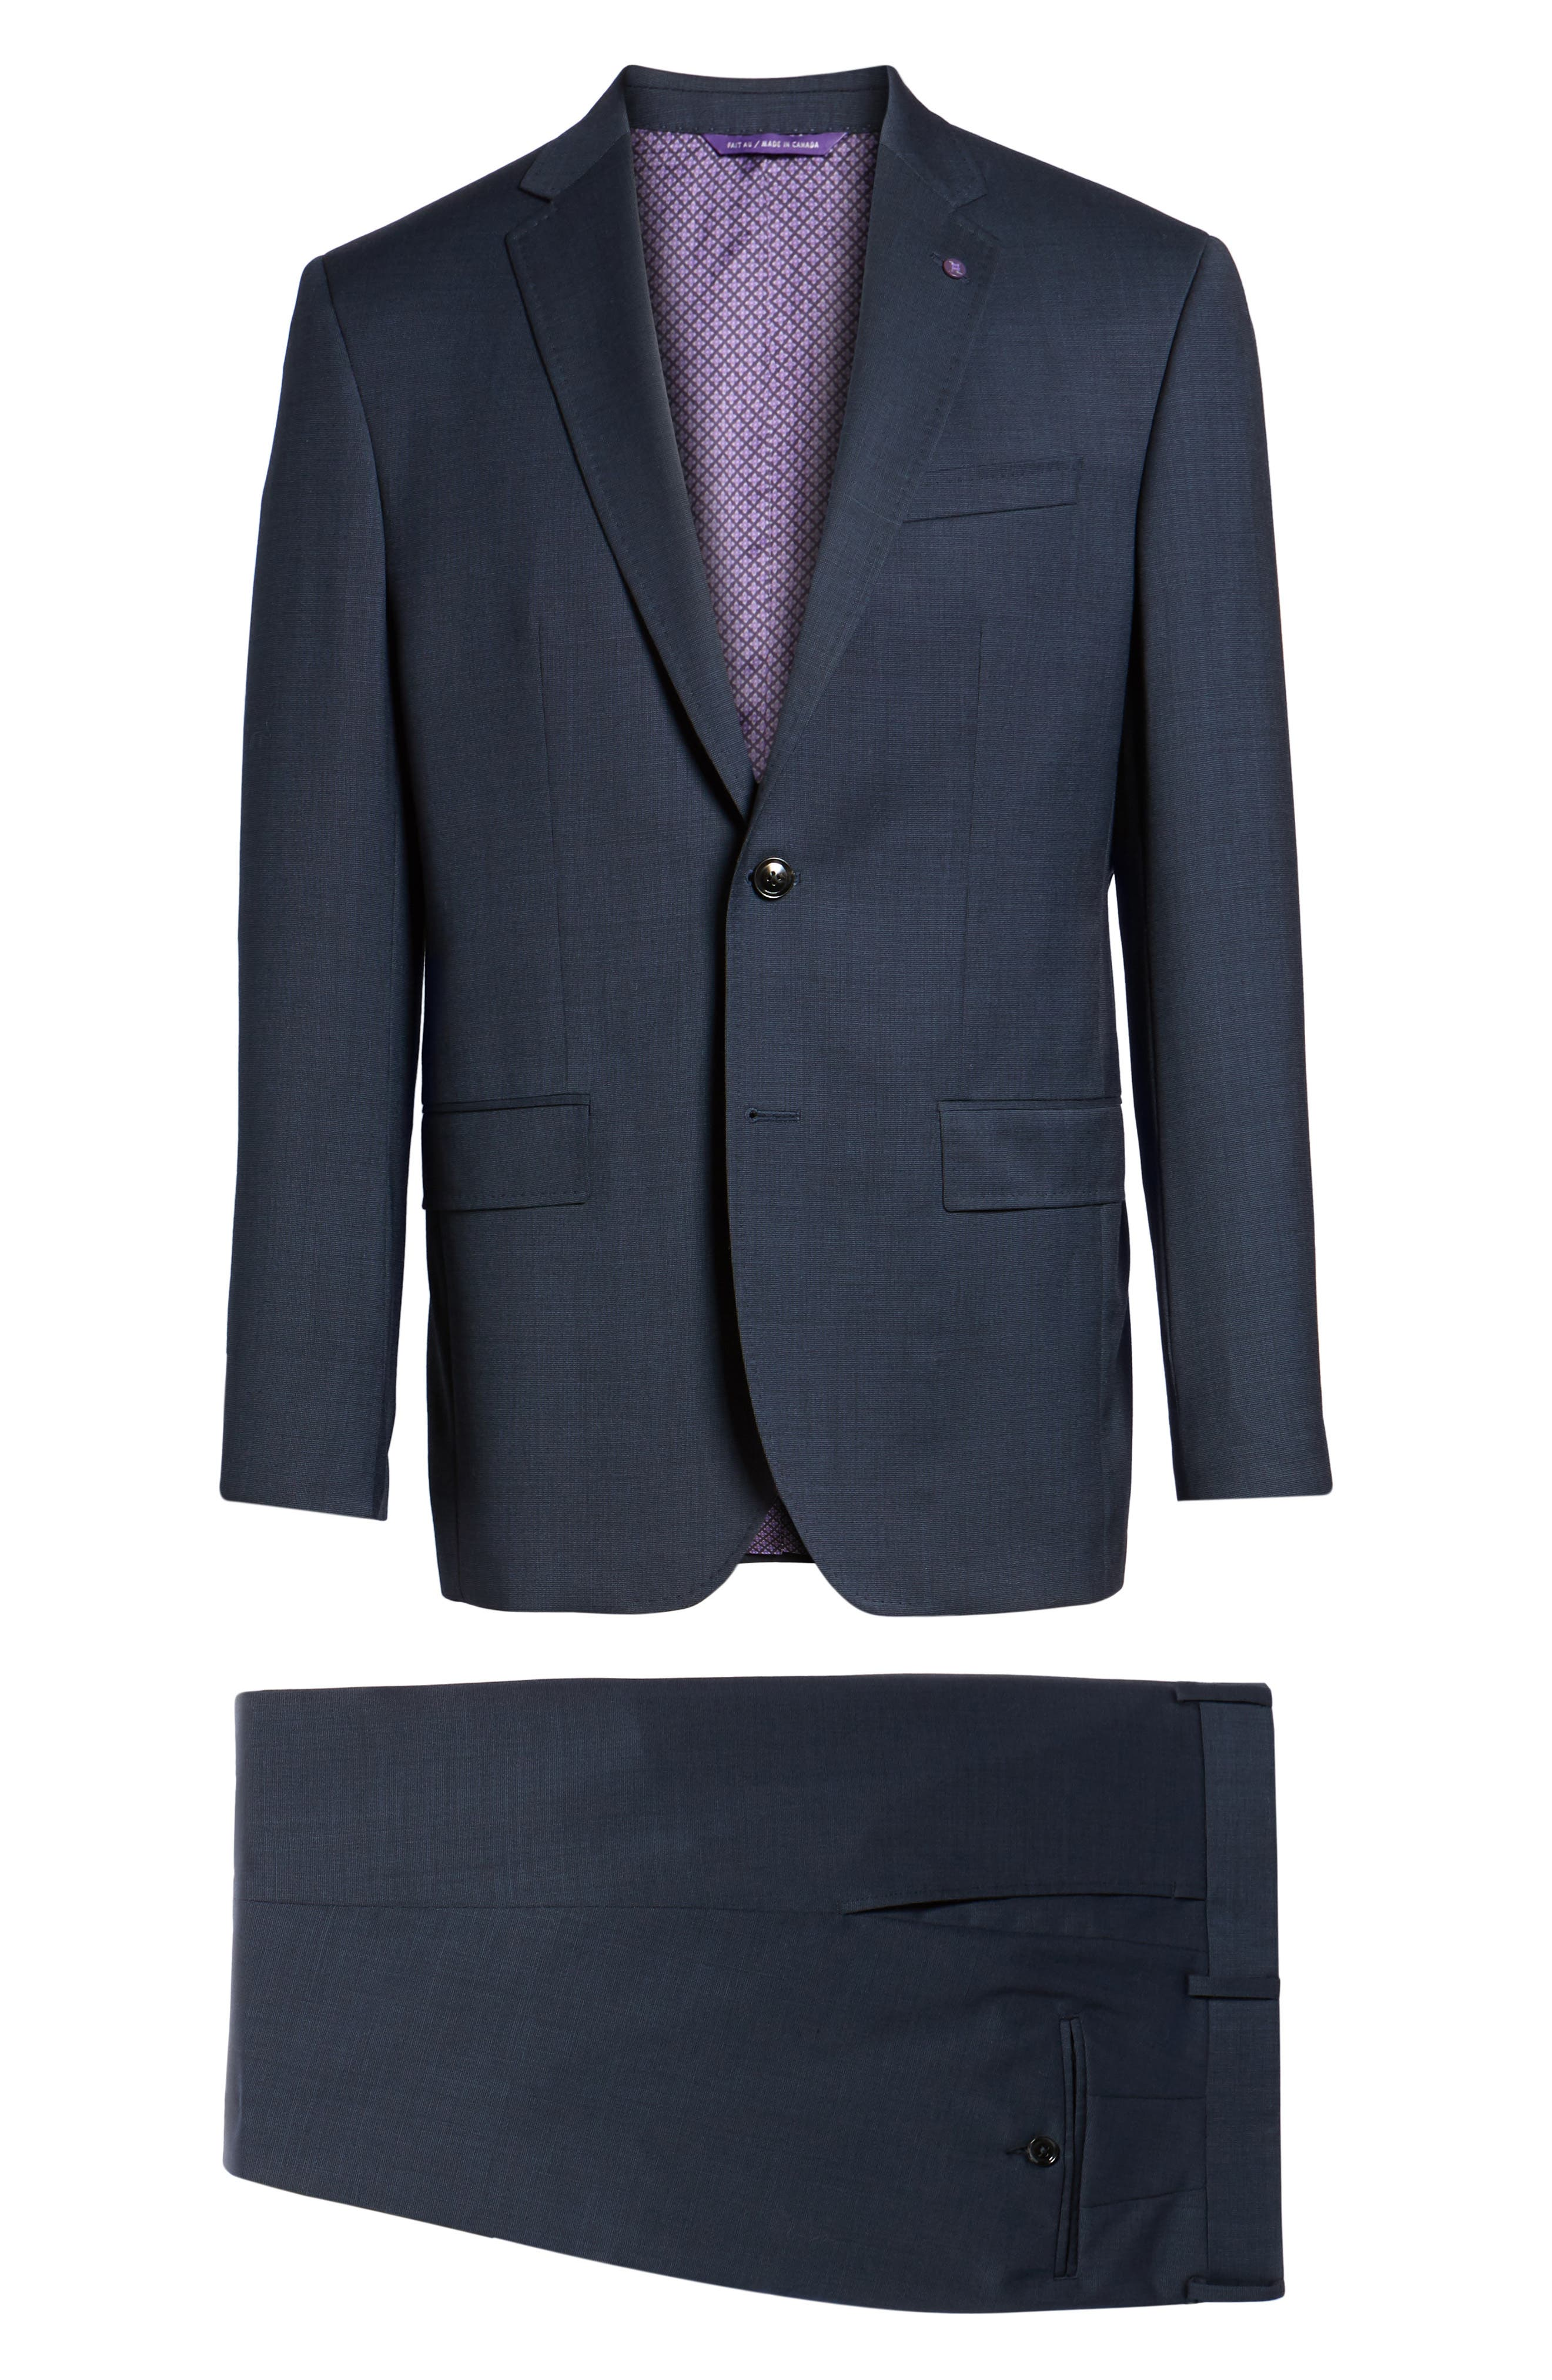 Jay Trim Fit Solid Wool Suit,                             Alternate thumbnail 8, color,                             Navy